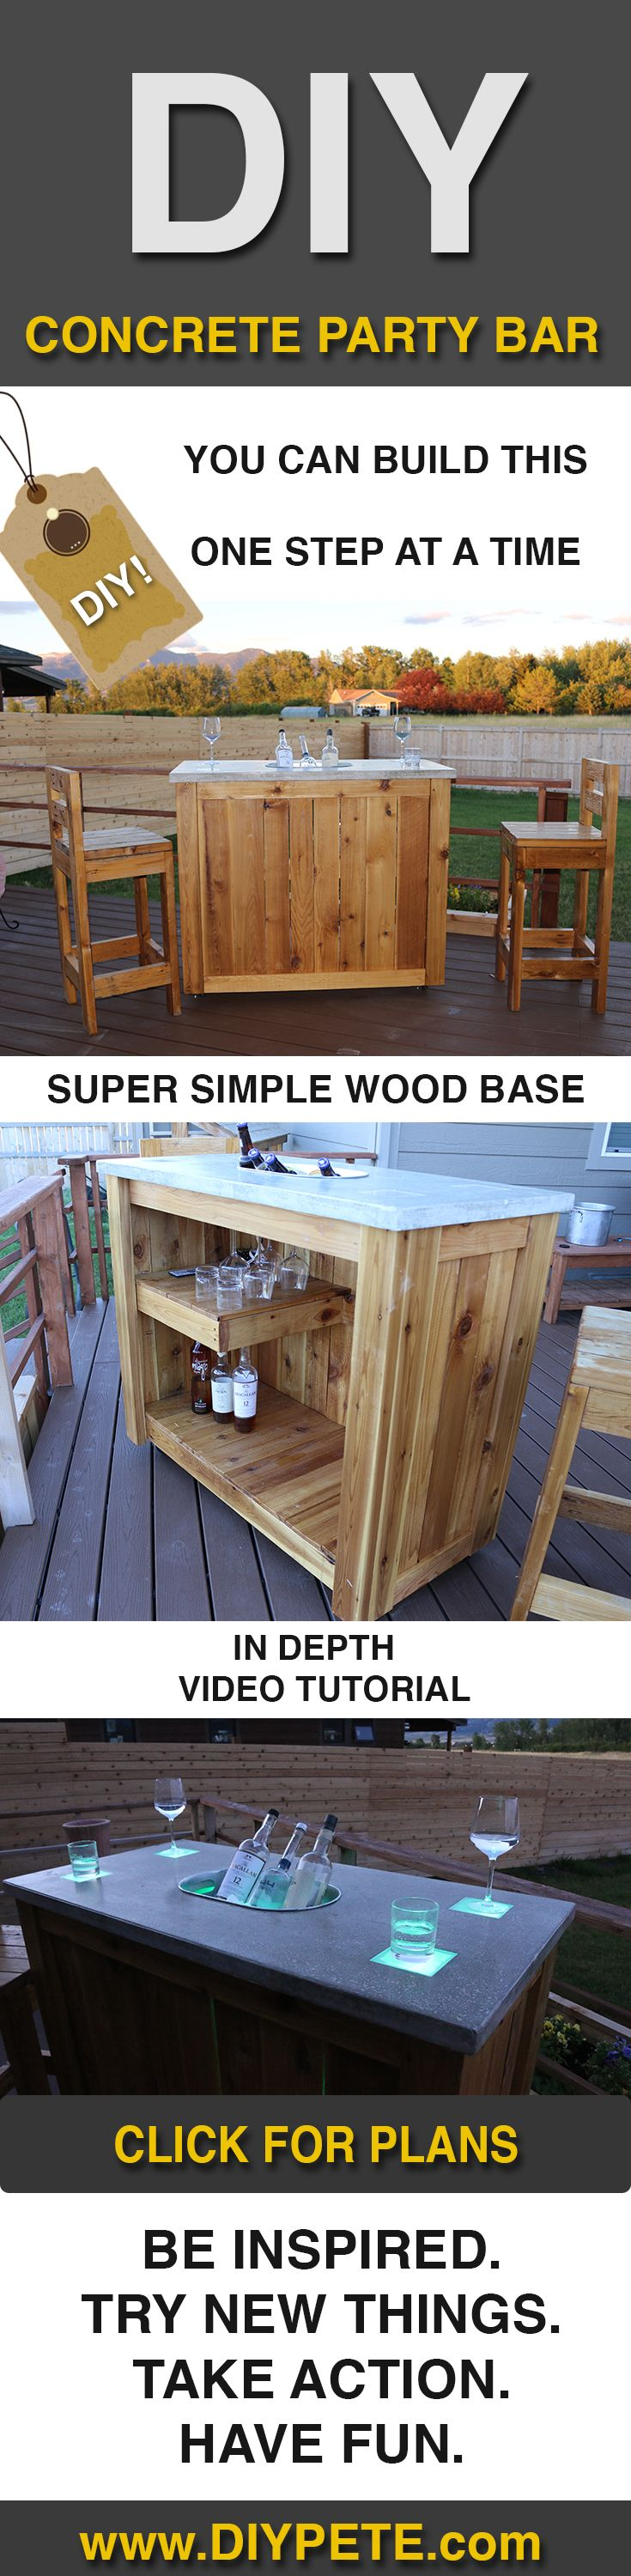 Design homemade dining table plans diy ideas 187 woodplans woodplans - Free Plans And Video Tutorial To Build A Concrete Party Bar Woodworking Planswoodworking